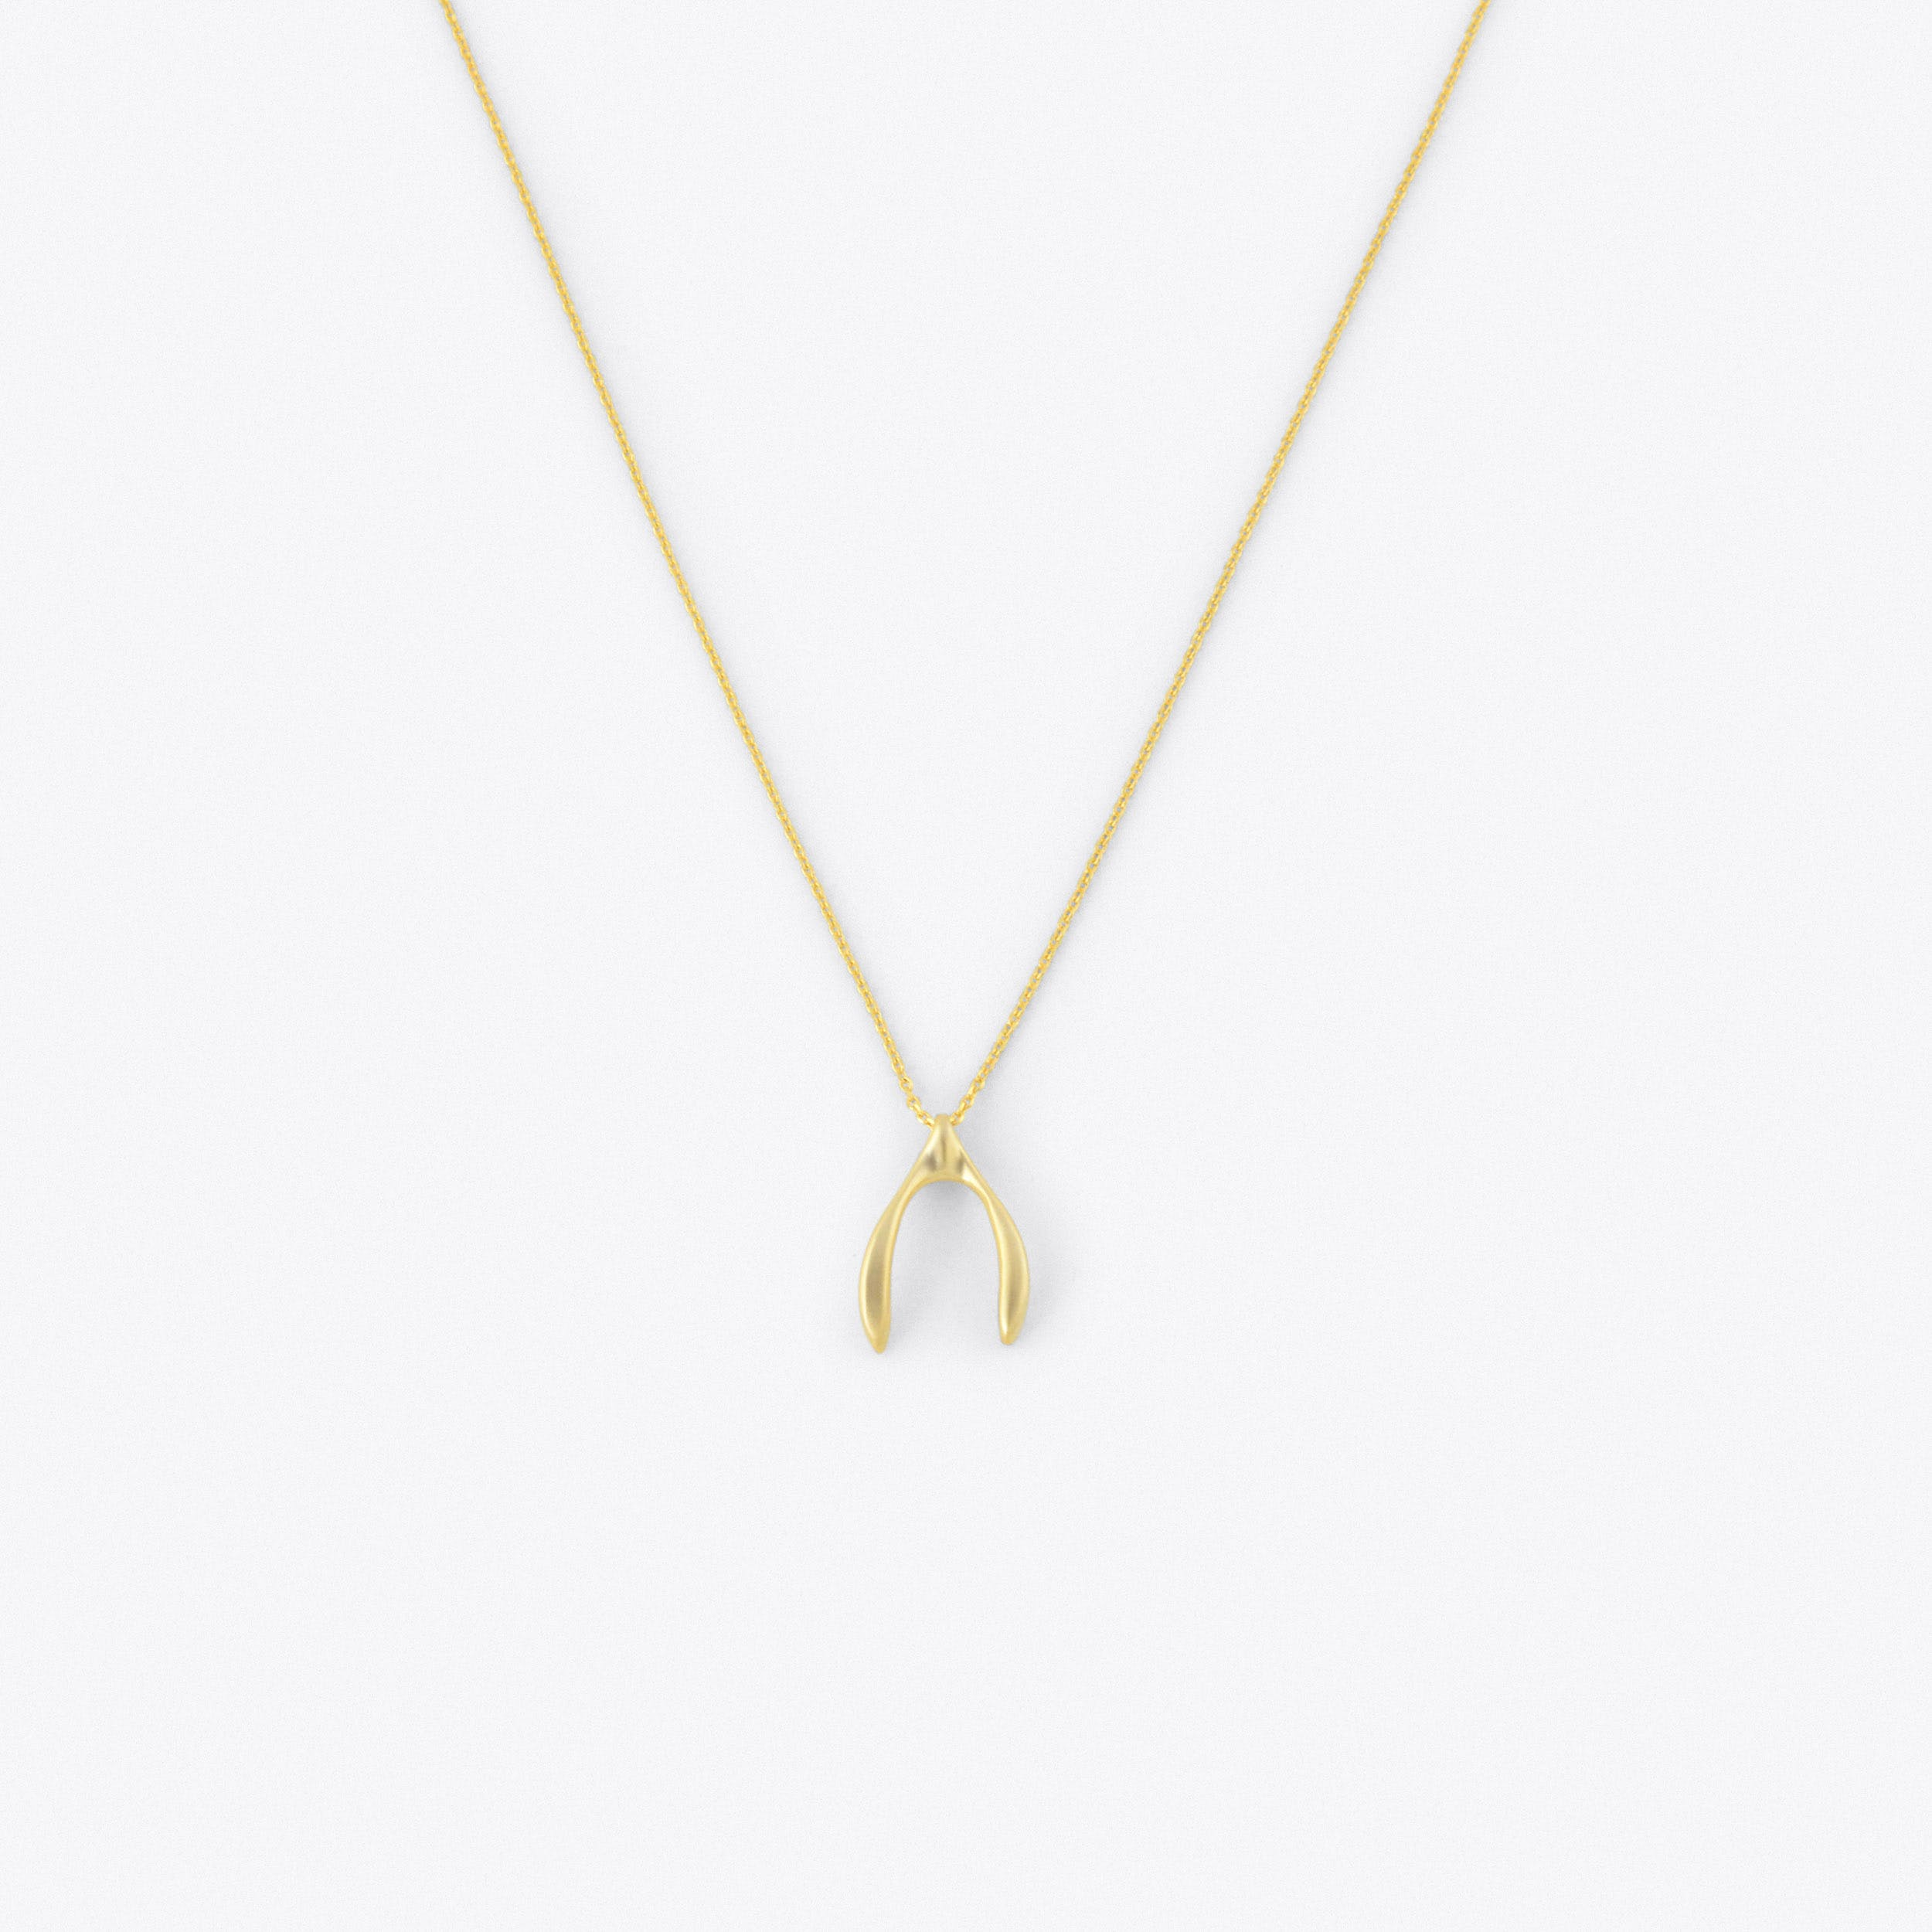 Wishbone Necklace in Gold I